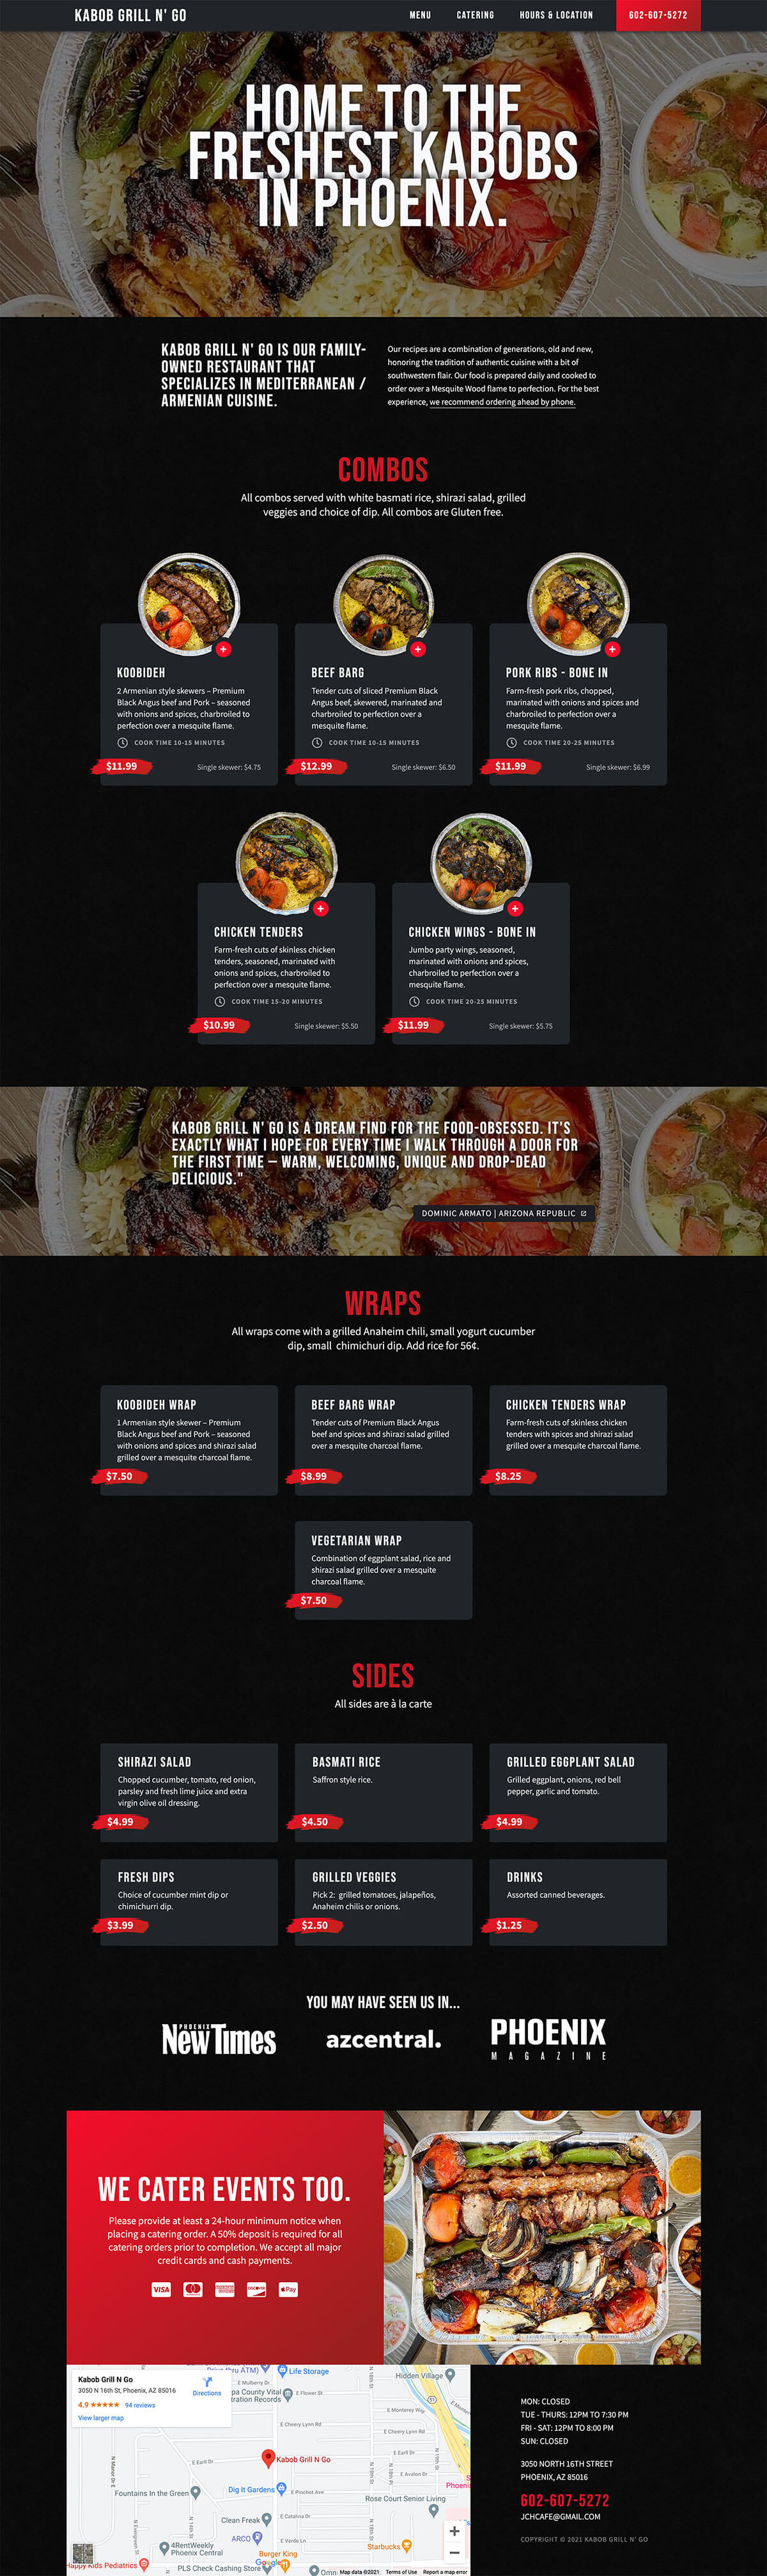 An image displaying the homepage for Kabob Grill N' Go